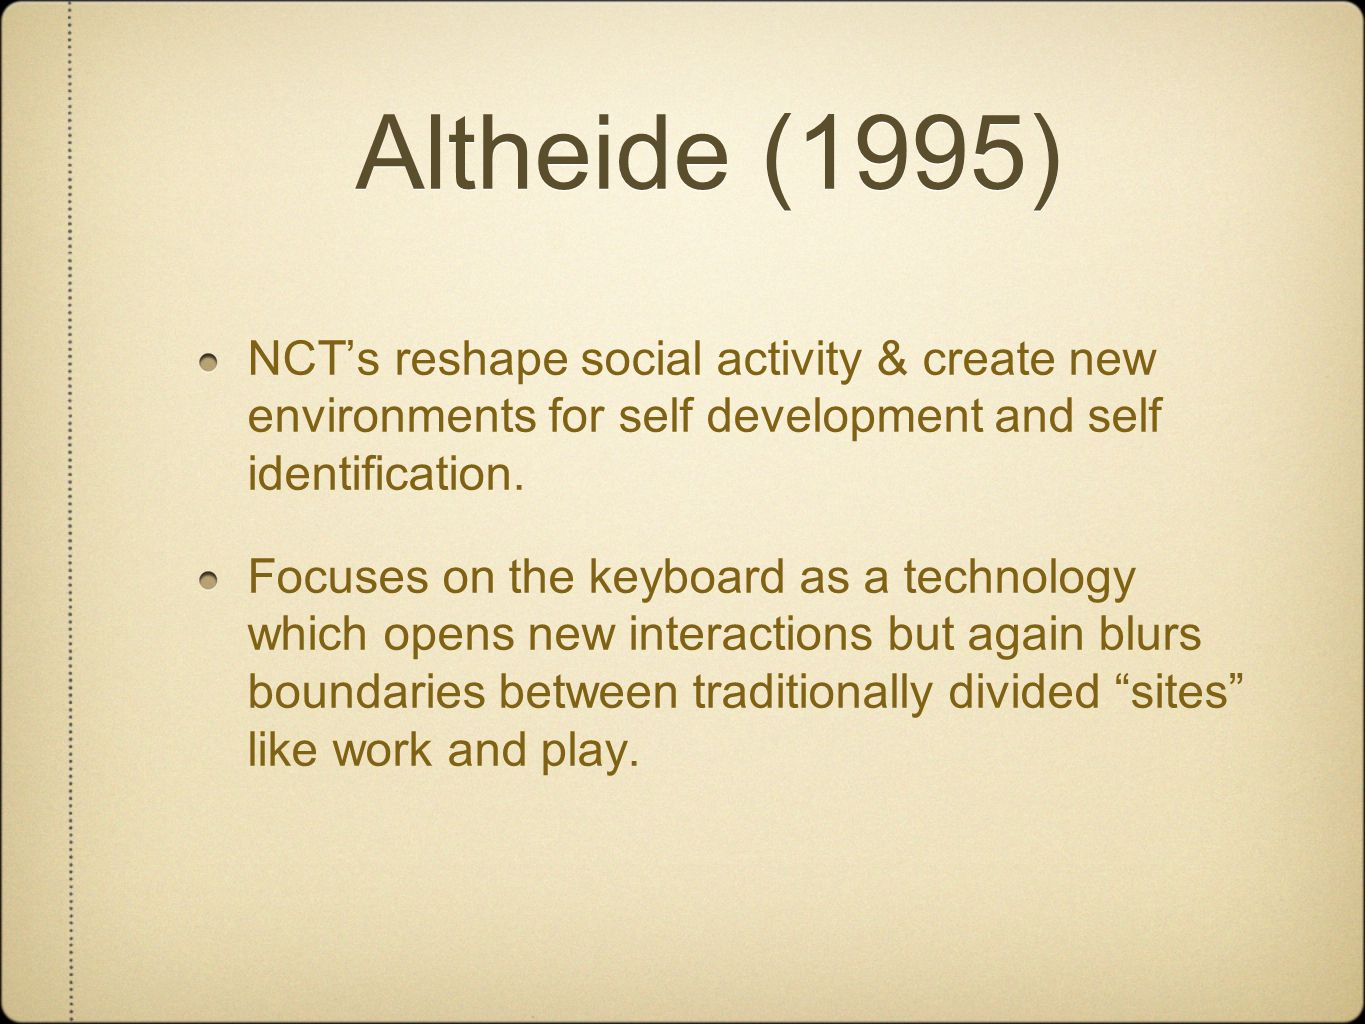 Altheide (1995) NCT's reshape social activity & create new environments for self development and self identification.